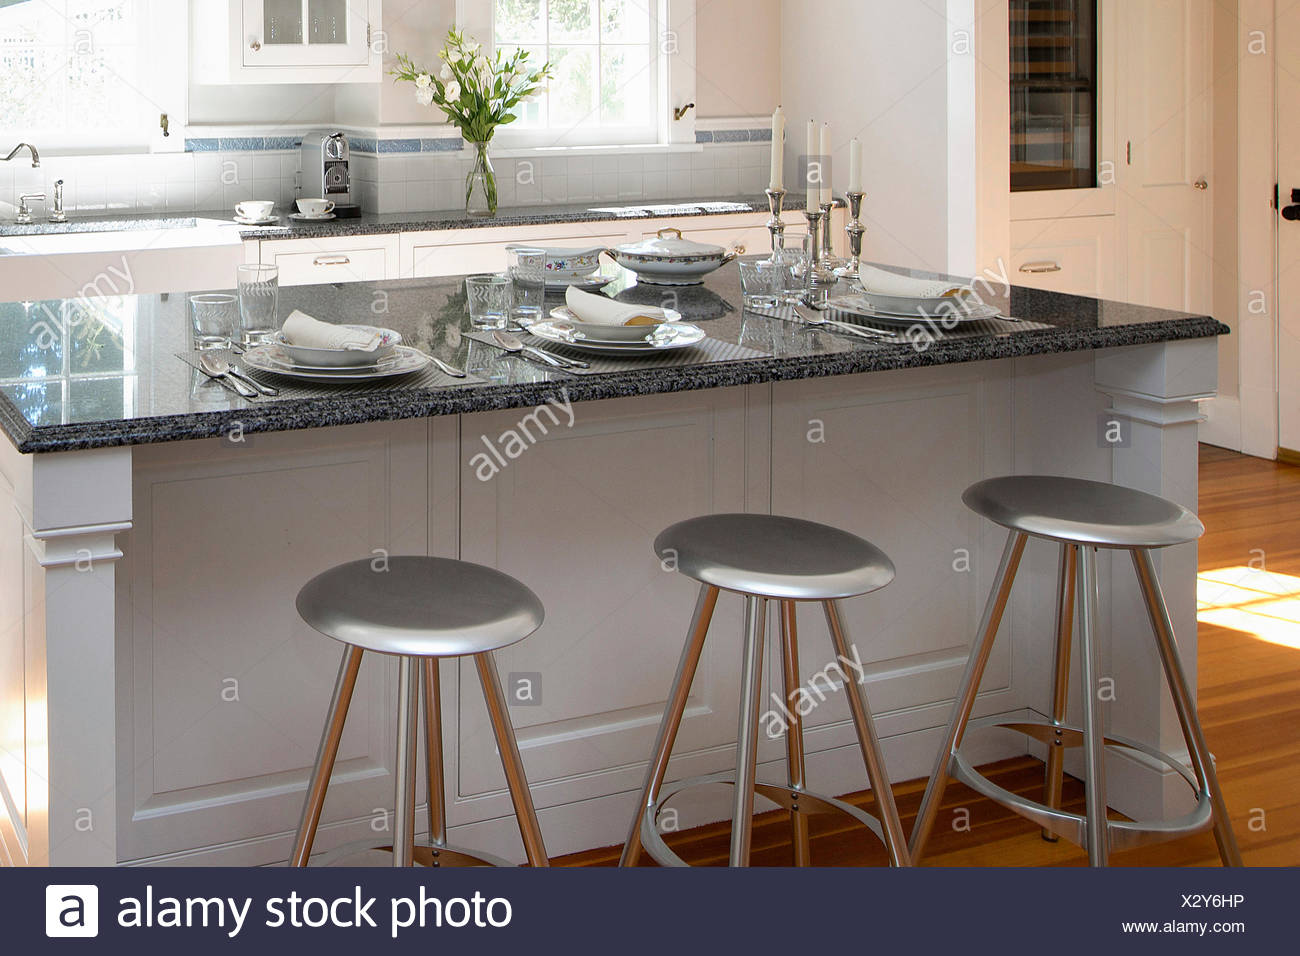 modern kitchen island with seating sink installation plan stock photos and images alamy